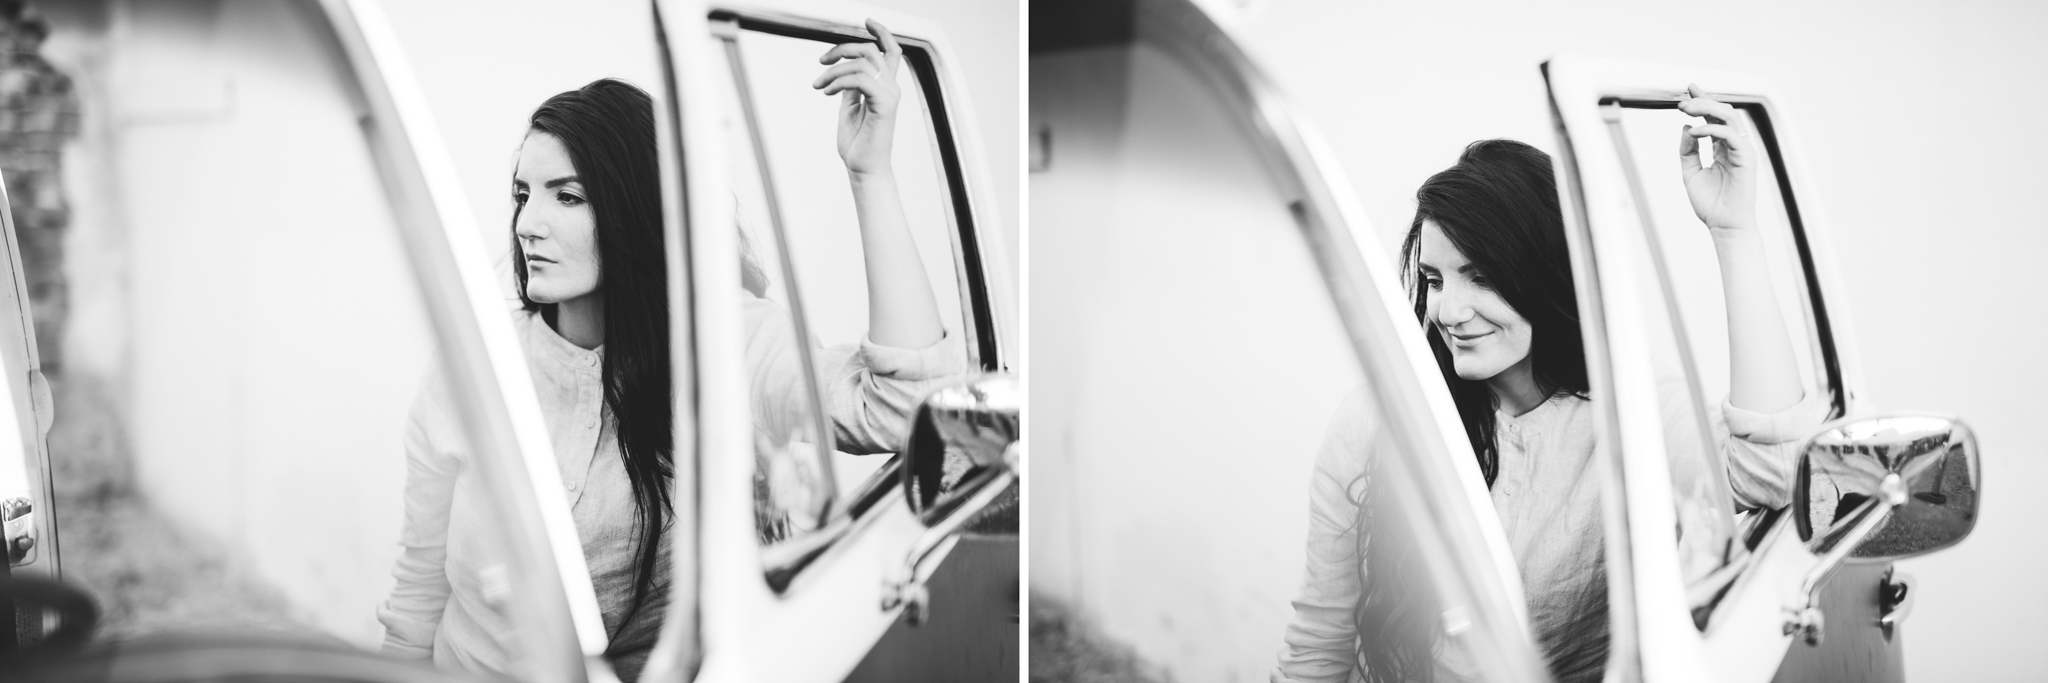 ©Isaiah & Taylor Photography - Los Angeles Photographer - Volkswagen VW Bus Engagement-4.jpg